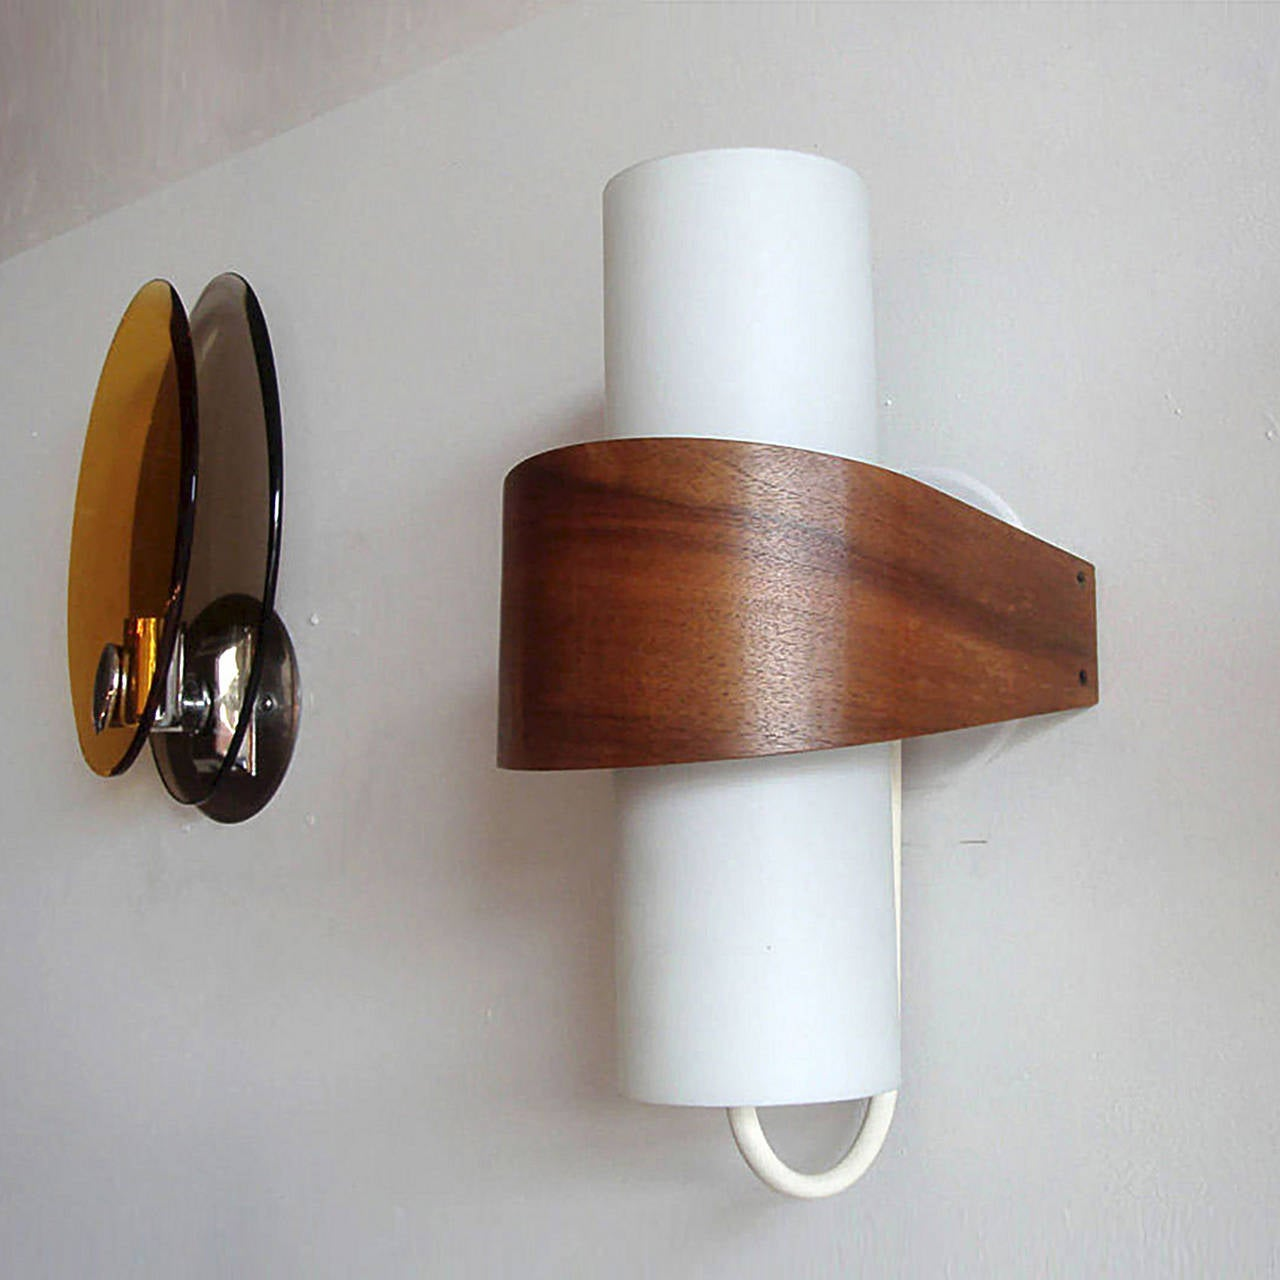 Philips Wall Lights NX40 For Sale at 1stdibs